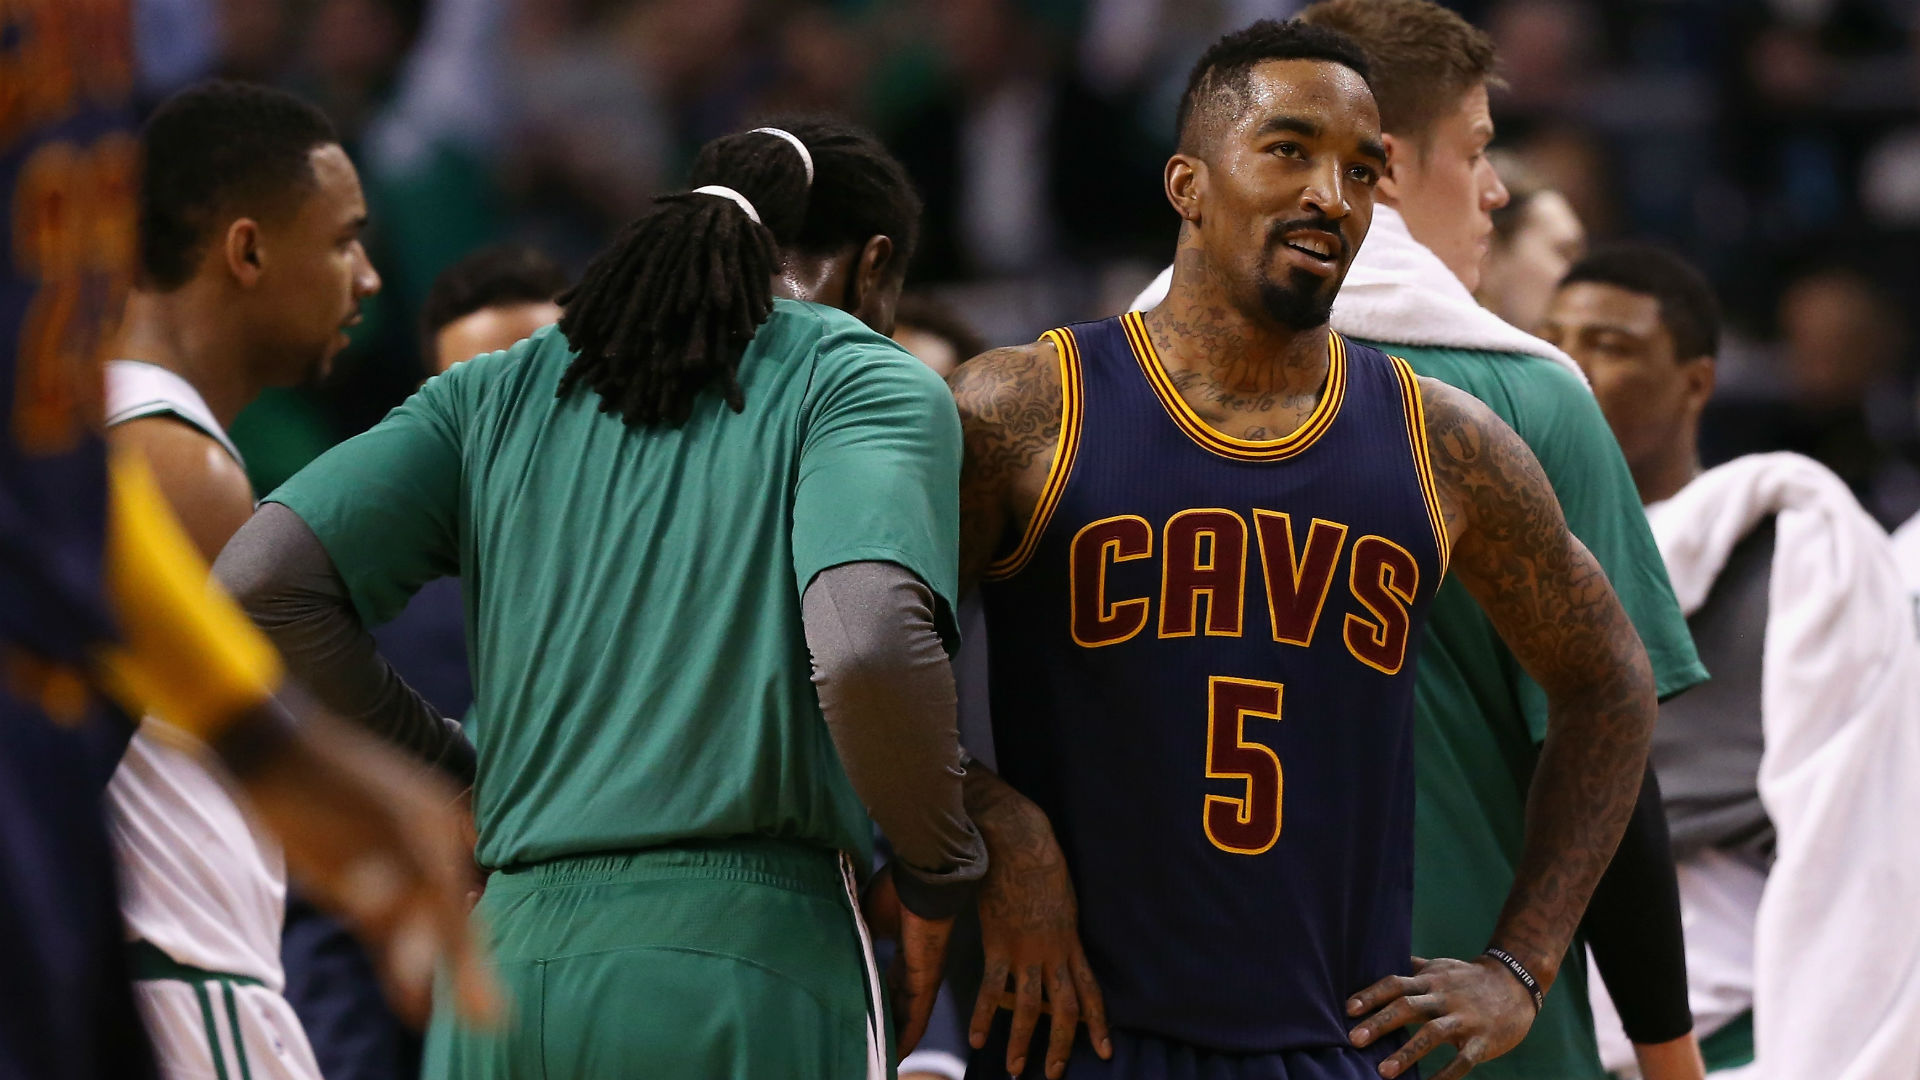 NBA suspends J.R. Smith, Kelly Olynyk in aftermath of Cavs-Celtics series